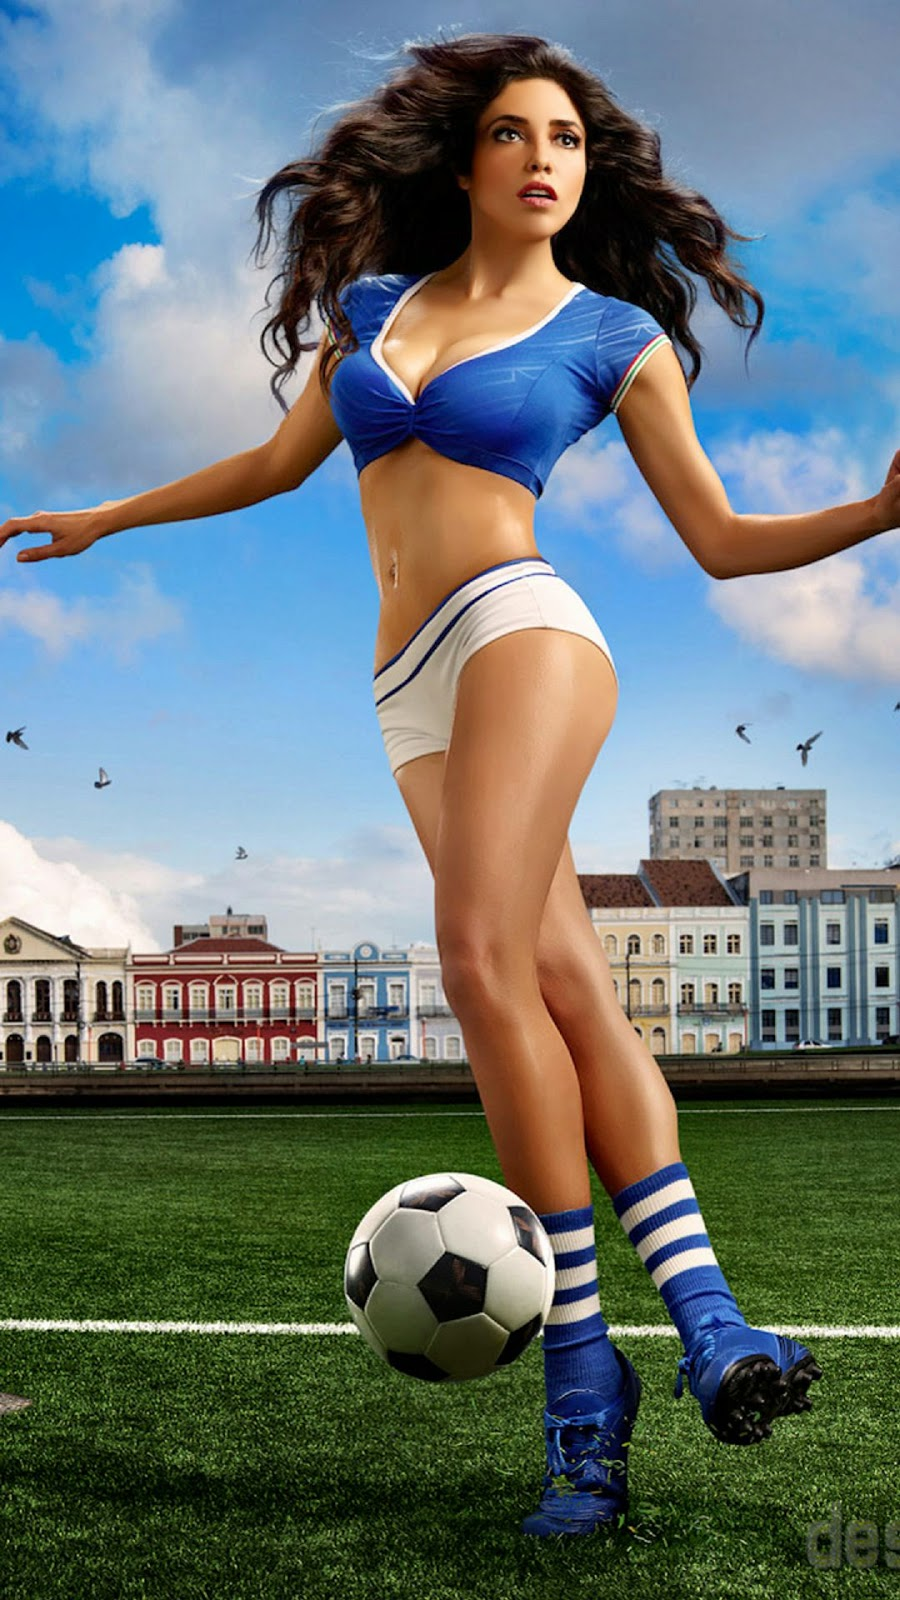 ACTRESS HOT IMAGES: Fifa 2014 girls hot, painted soccer girls 2014